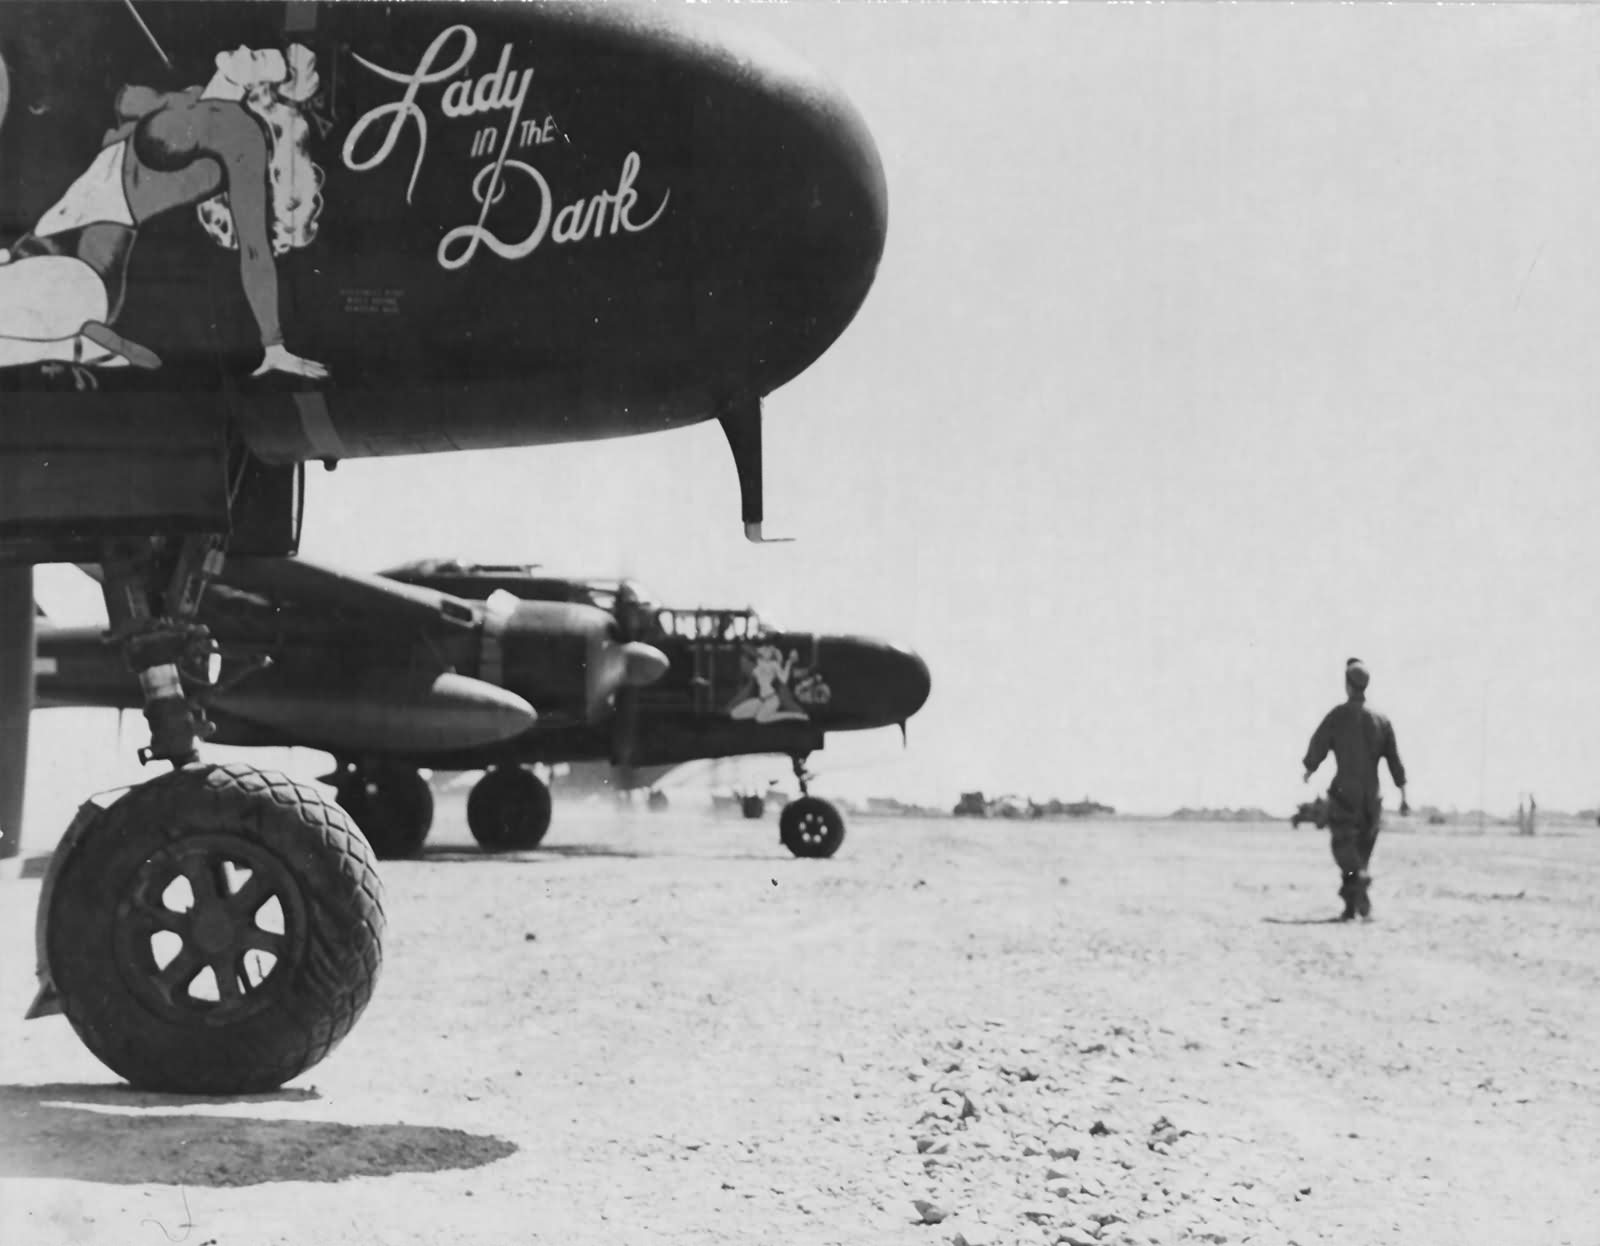 P-61B_42-39408_Lady_In_The_Dark_of_the_548th_Night_Fighter_Squadron_-_42-5609_Bat_Outa_Hell.jpg